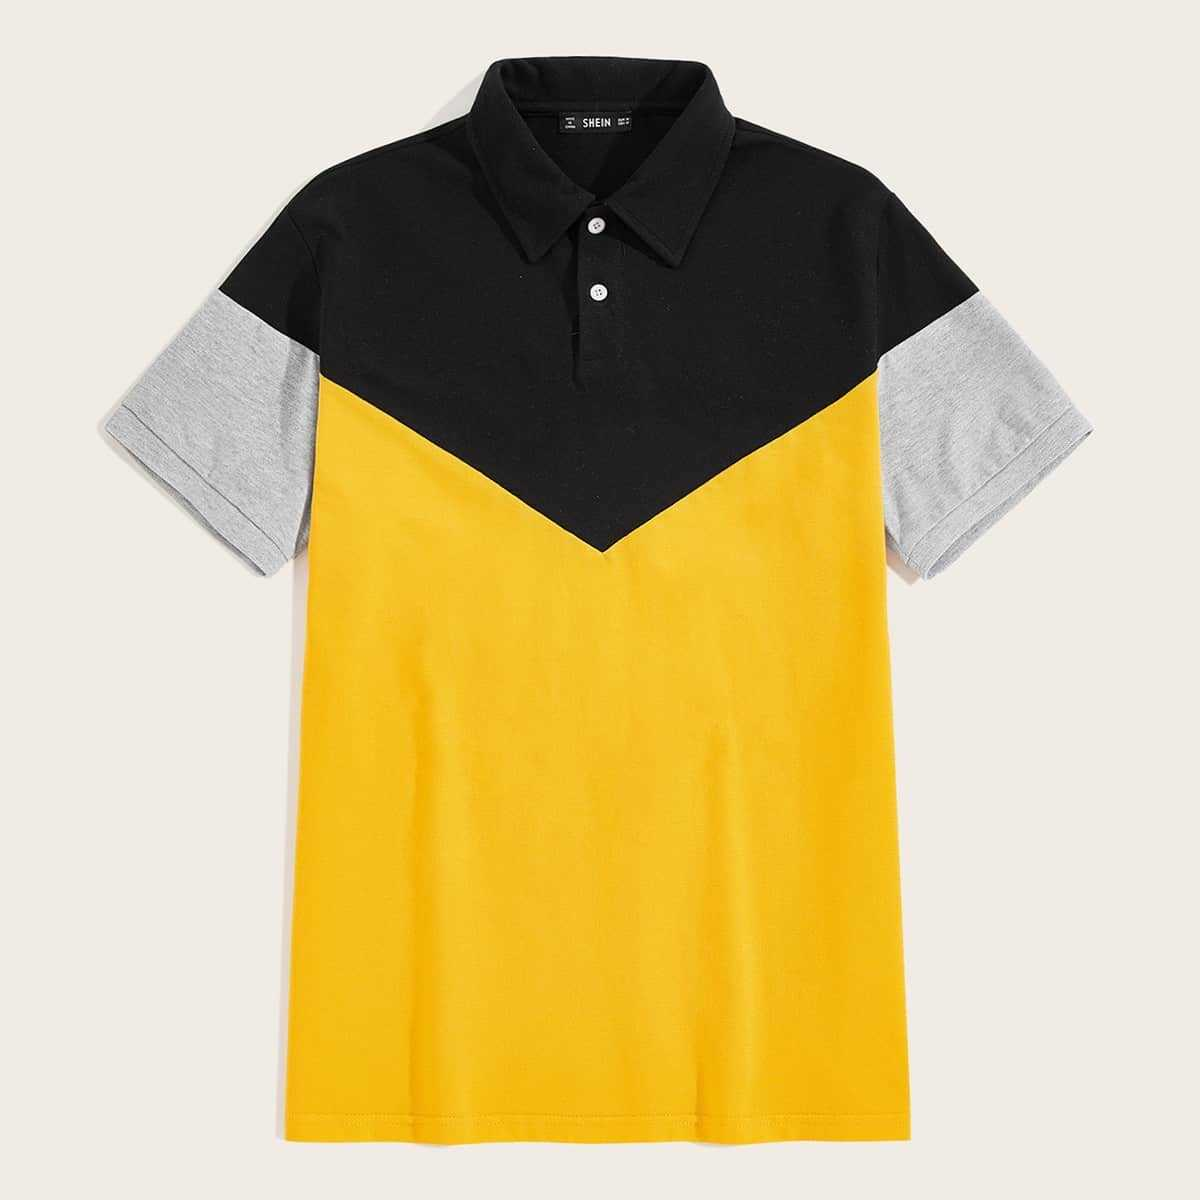 Guys Heather Grey Panel Colorblock Polo Shirt in Multicolor Bright by ROMWE on GOOFASH